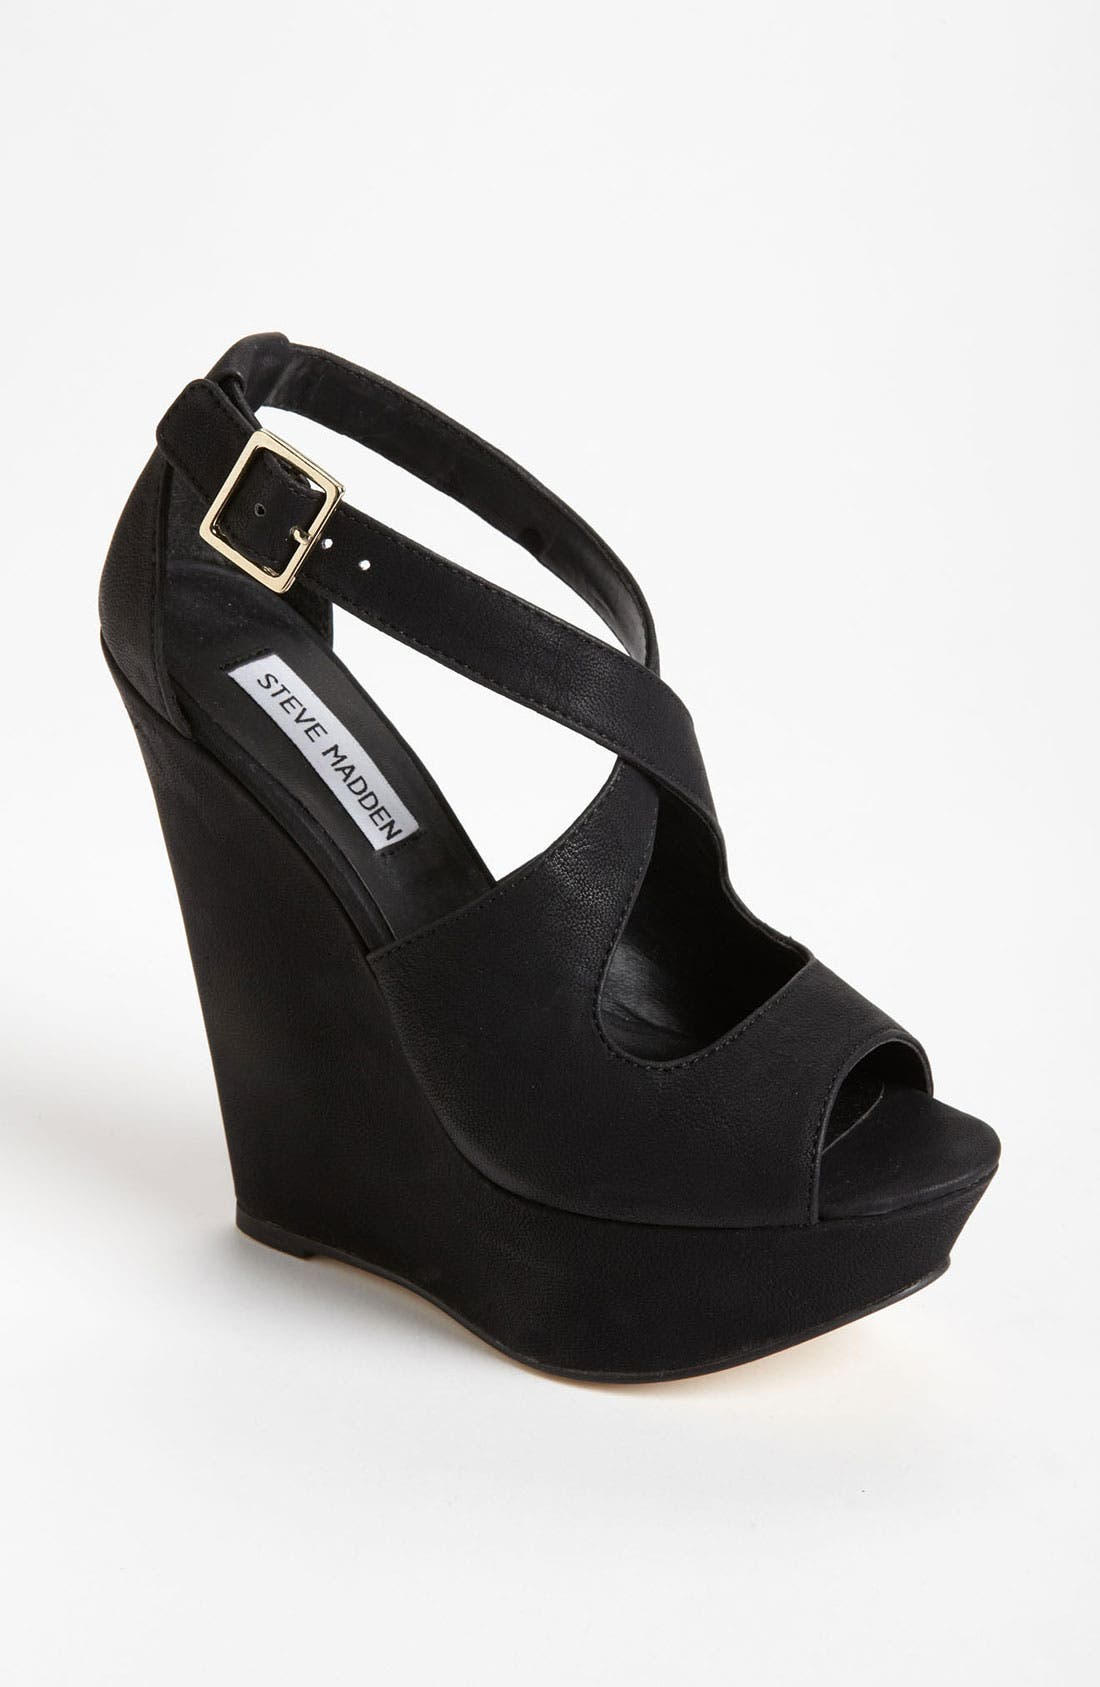 Alternate Image 1 Selected - Steve Madden 'Xternal' Wedge Sandal